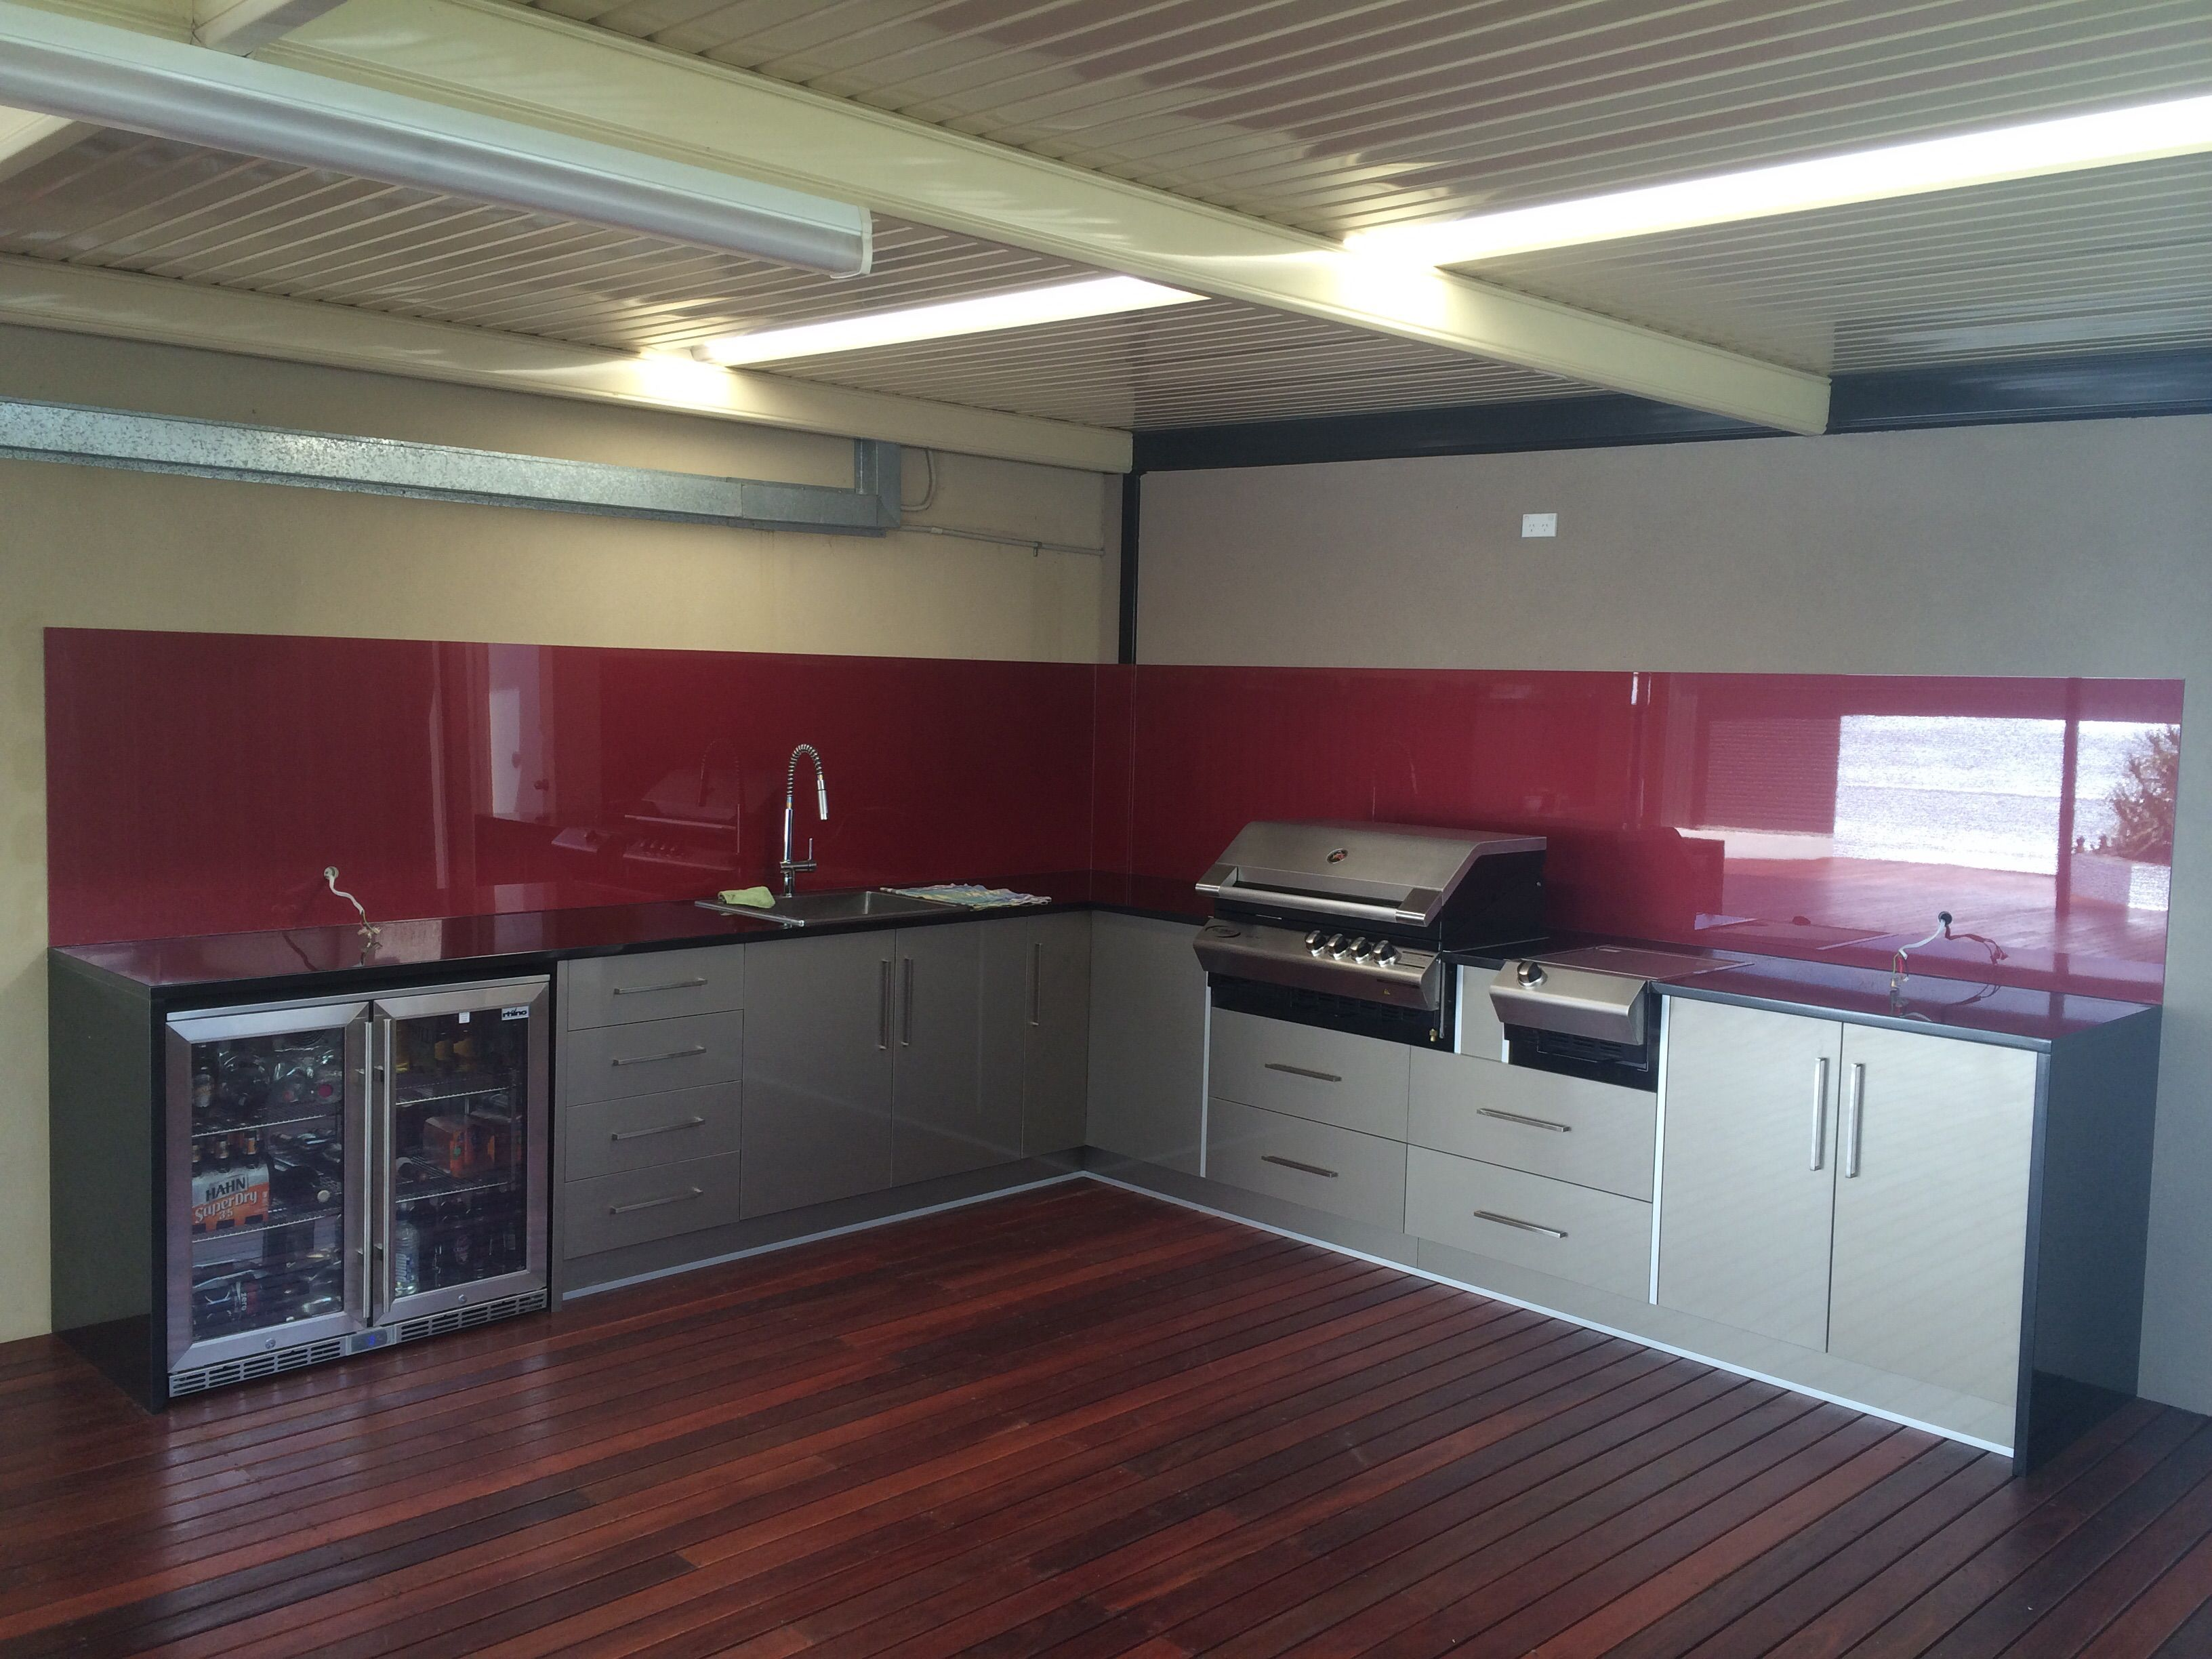 Residential Project By Sutherland Shopfitters Entered In Laminex Australia S Project Of The Year Outdoor Kitchen Cabinets Outdoor Kitchen Kitchen Cabinets